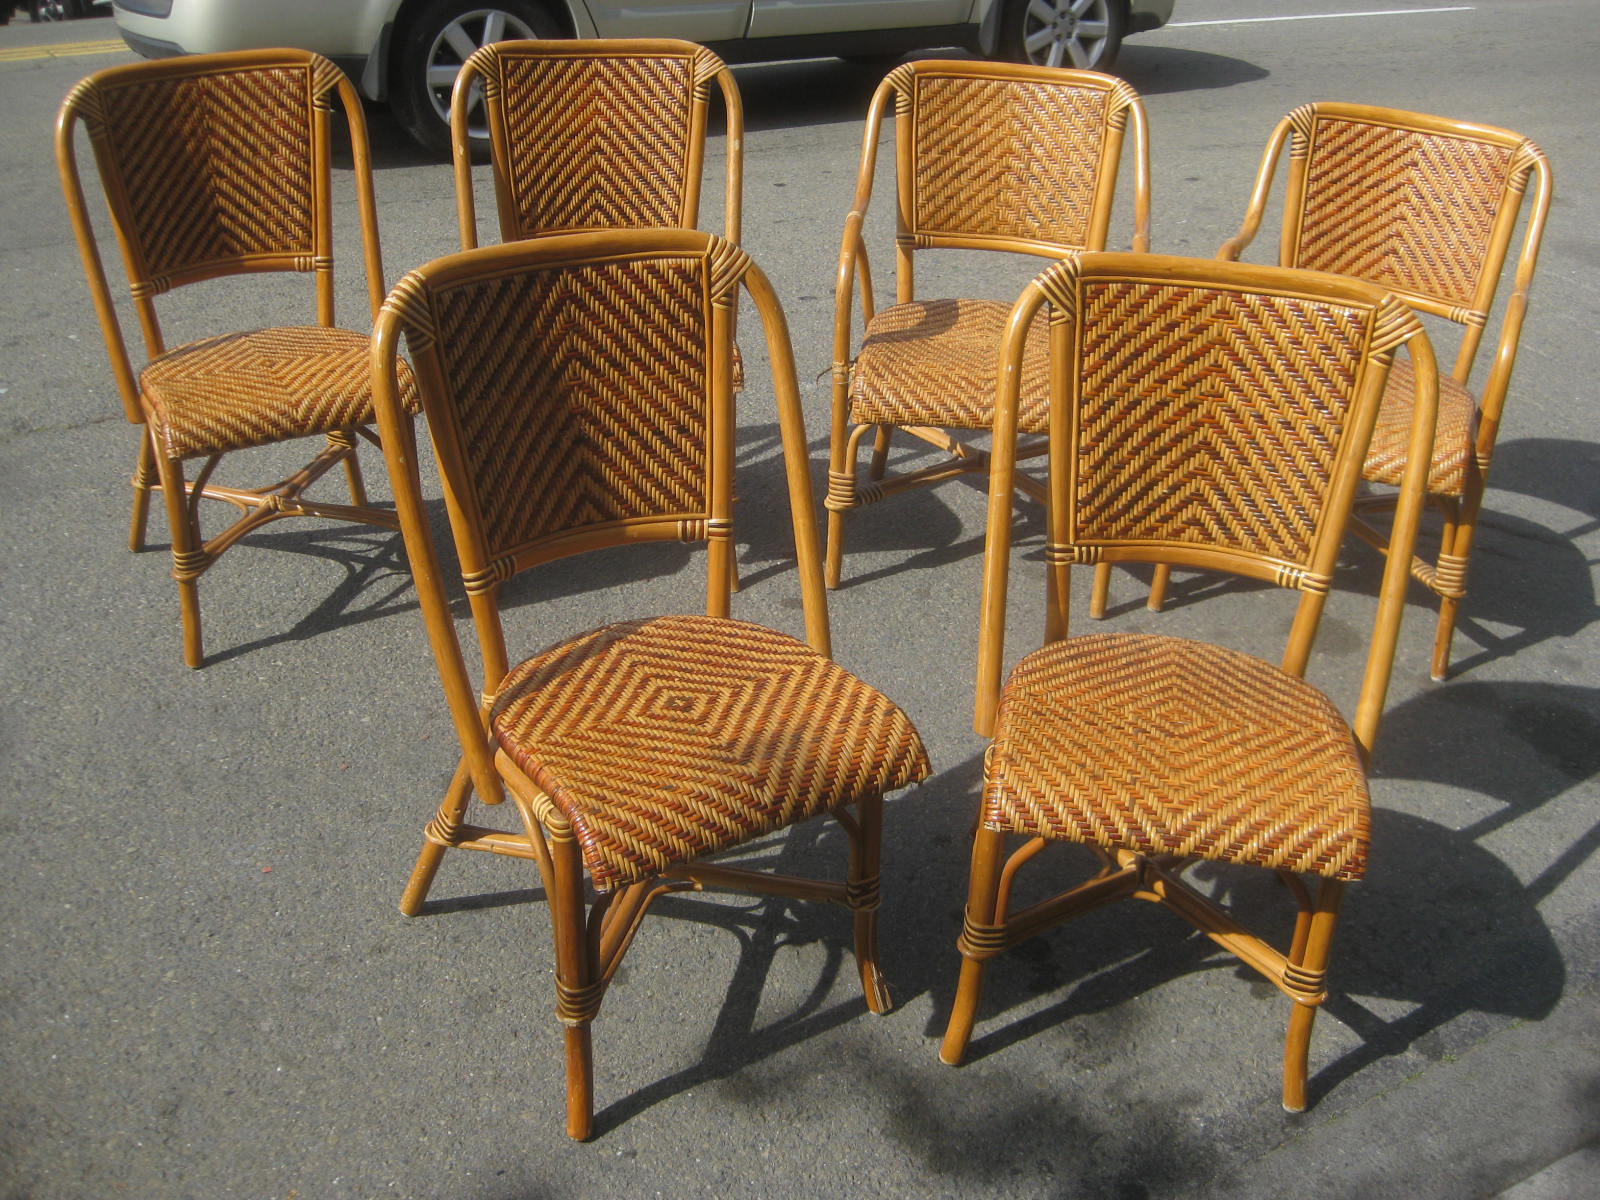 Uhuru Furniture Amp Collectibles Sold Six Rattan And Wicker Chairs 95